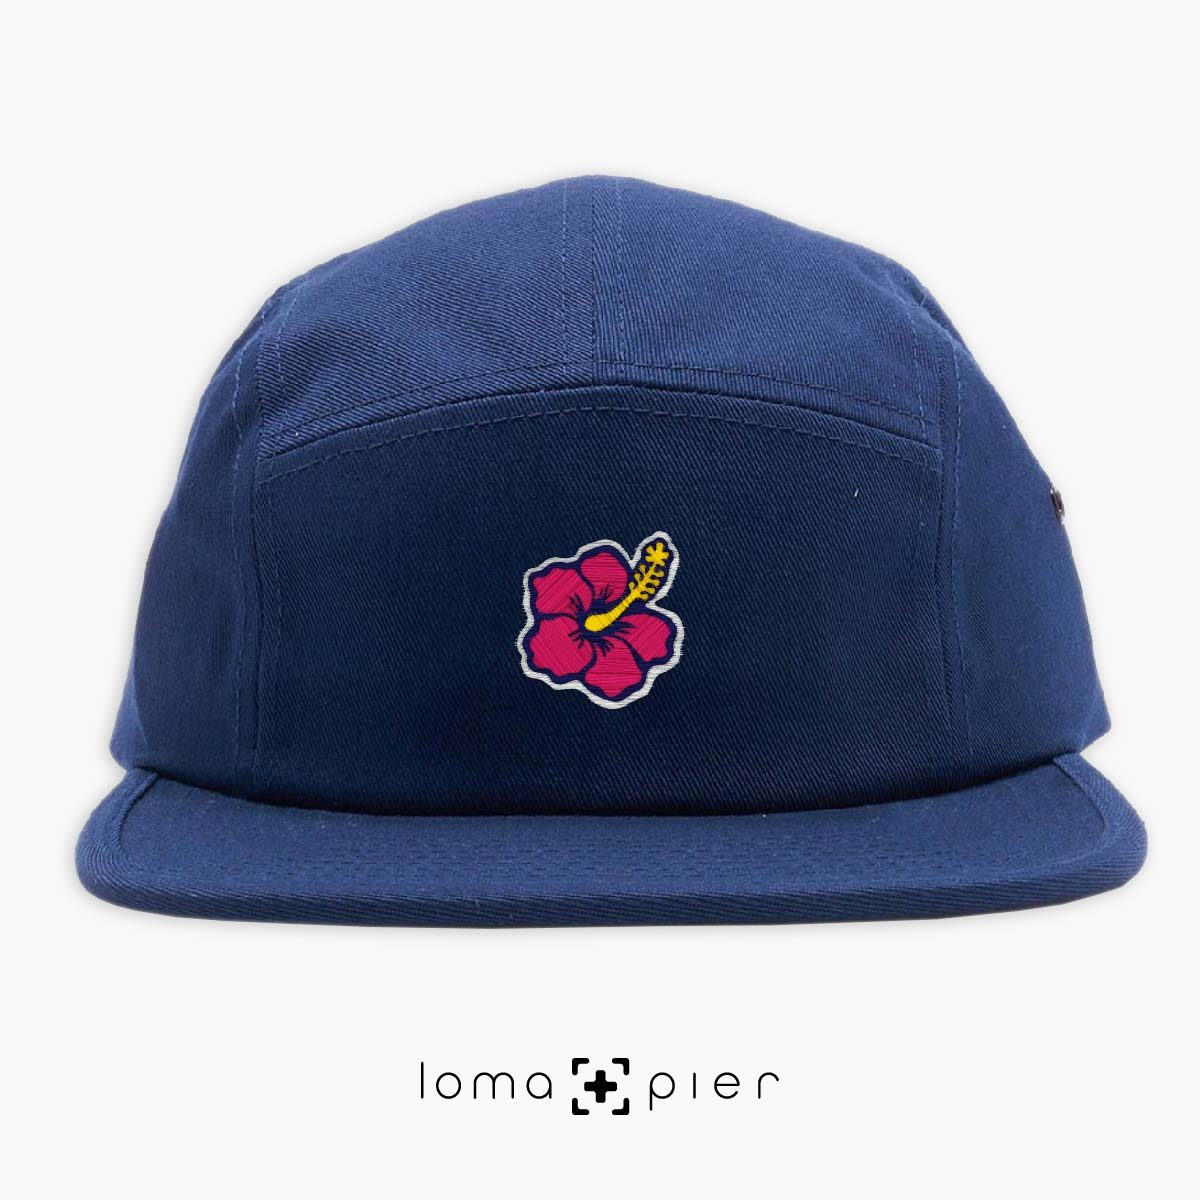 hibiscus hawaiian flower icon 5-panel hat in navy blue by loma+pier hat store